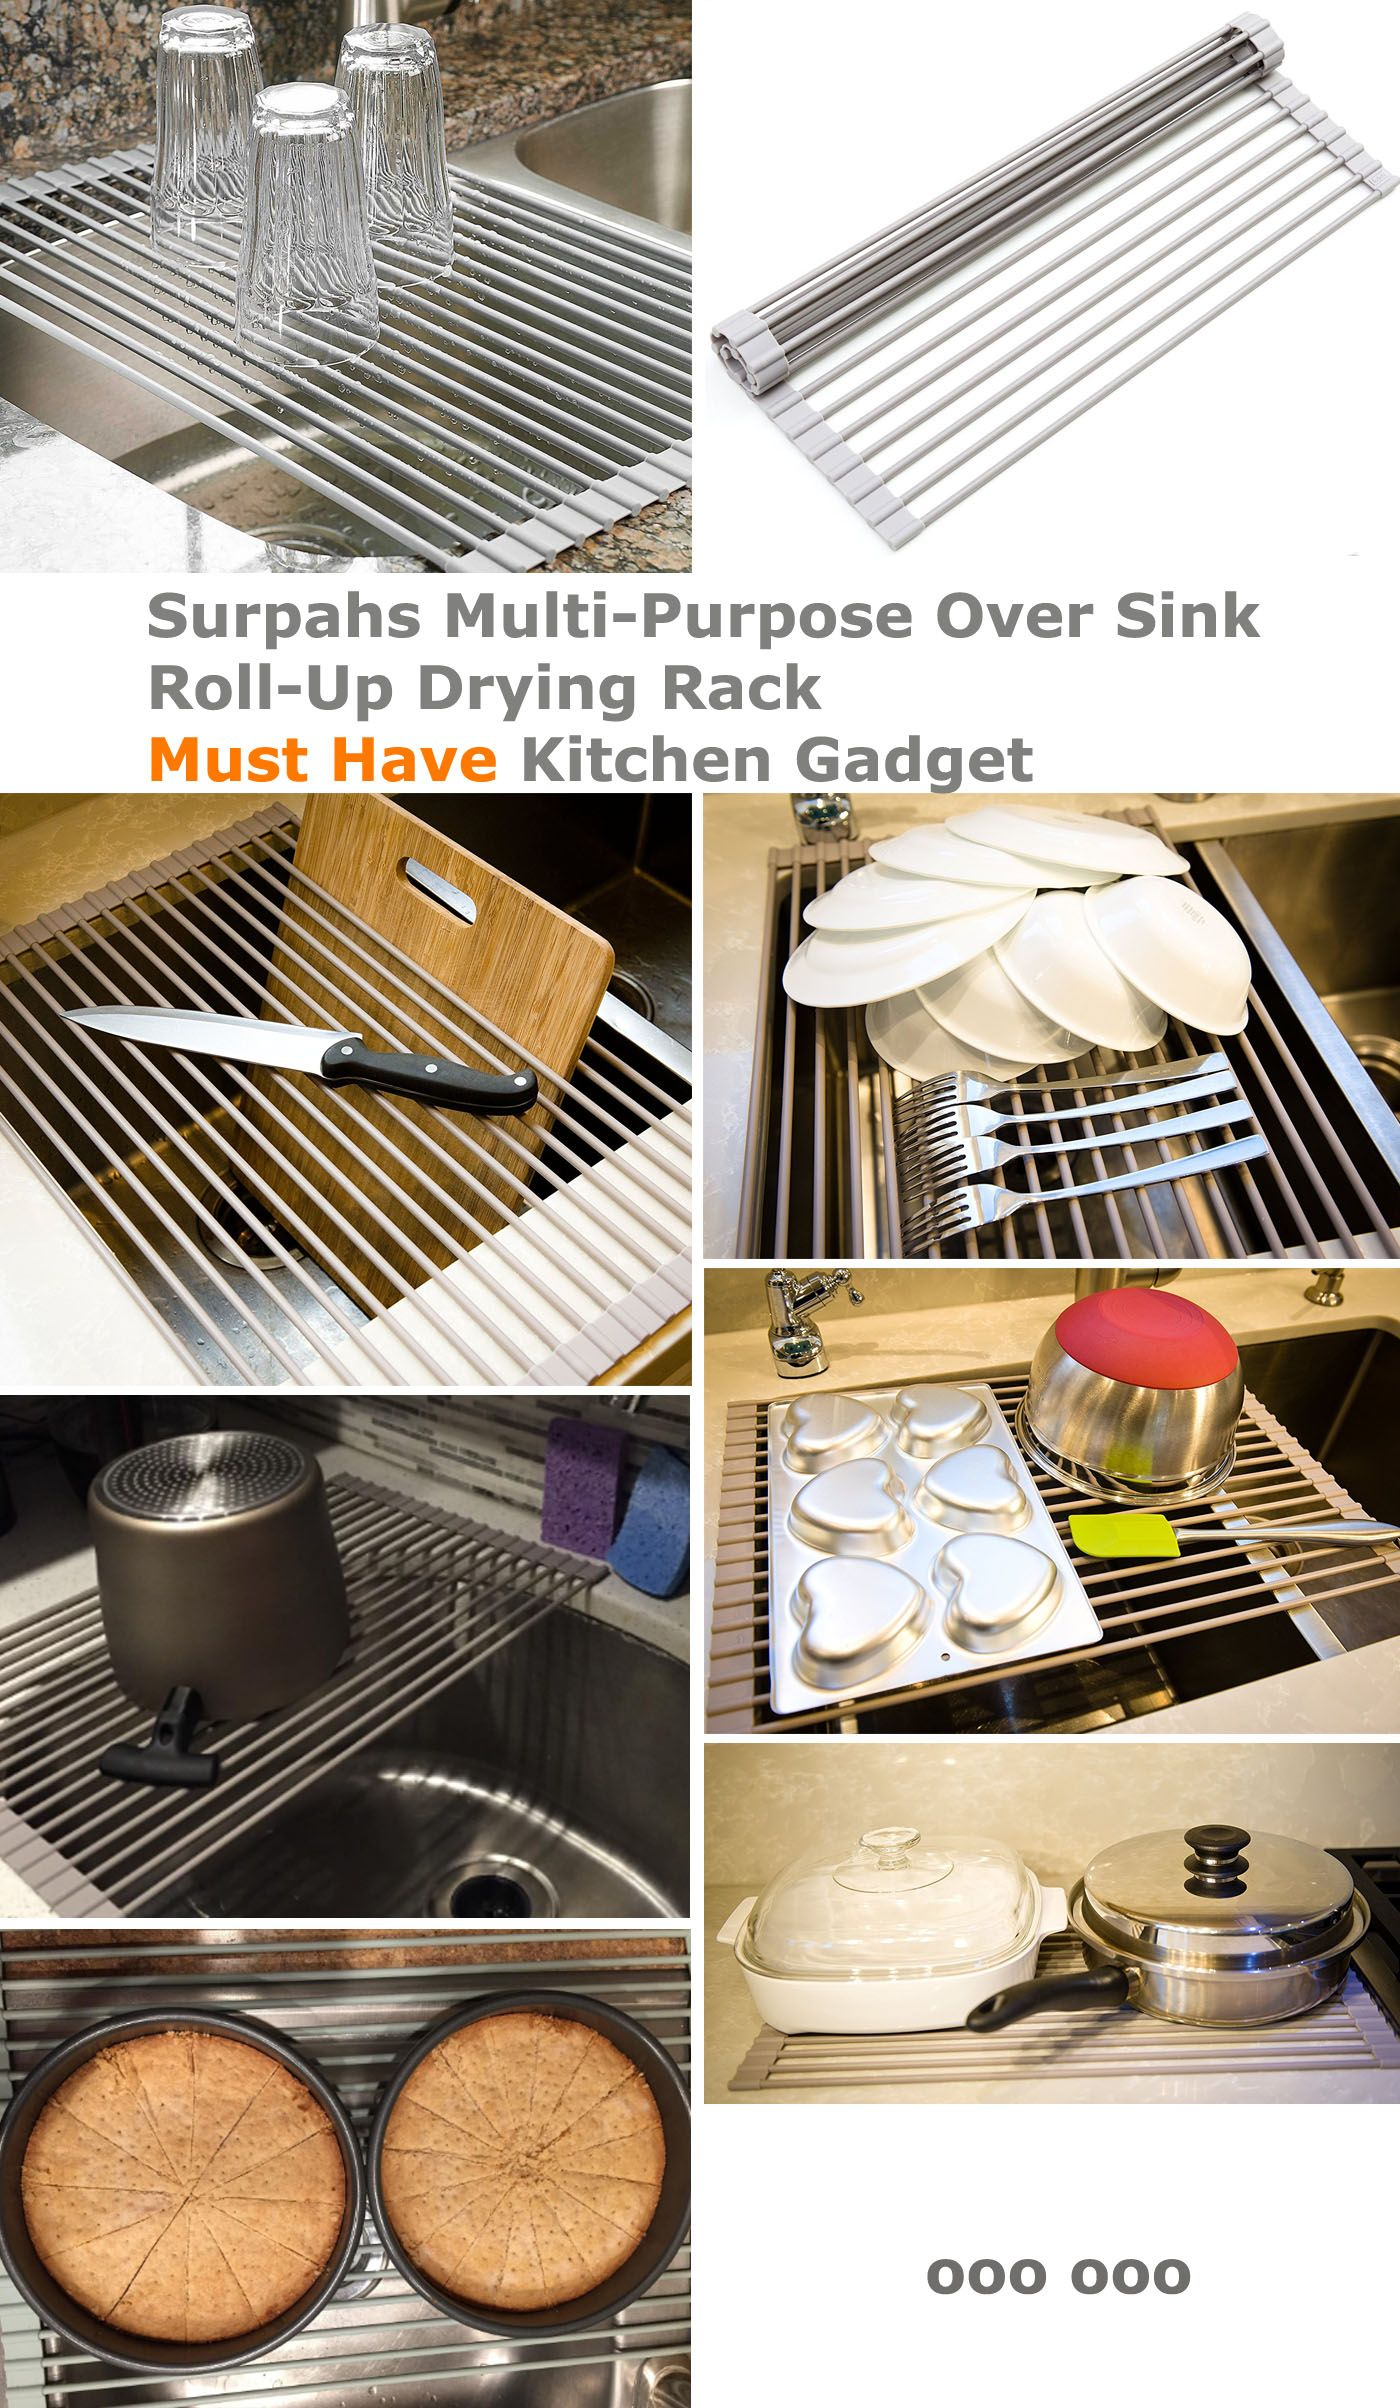 Multipurpose drying rack. Must have kitchen gadgets for every kitchen.  Air dry hand washed dishes, bowls, plates, pots, fry pans, bakeware, kitchen utensils. Dry off fruits and vegetables. Foldable, stackable, roll-up for space saving storage #kitchenutensils